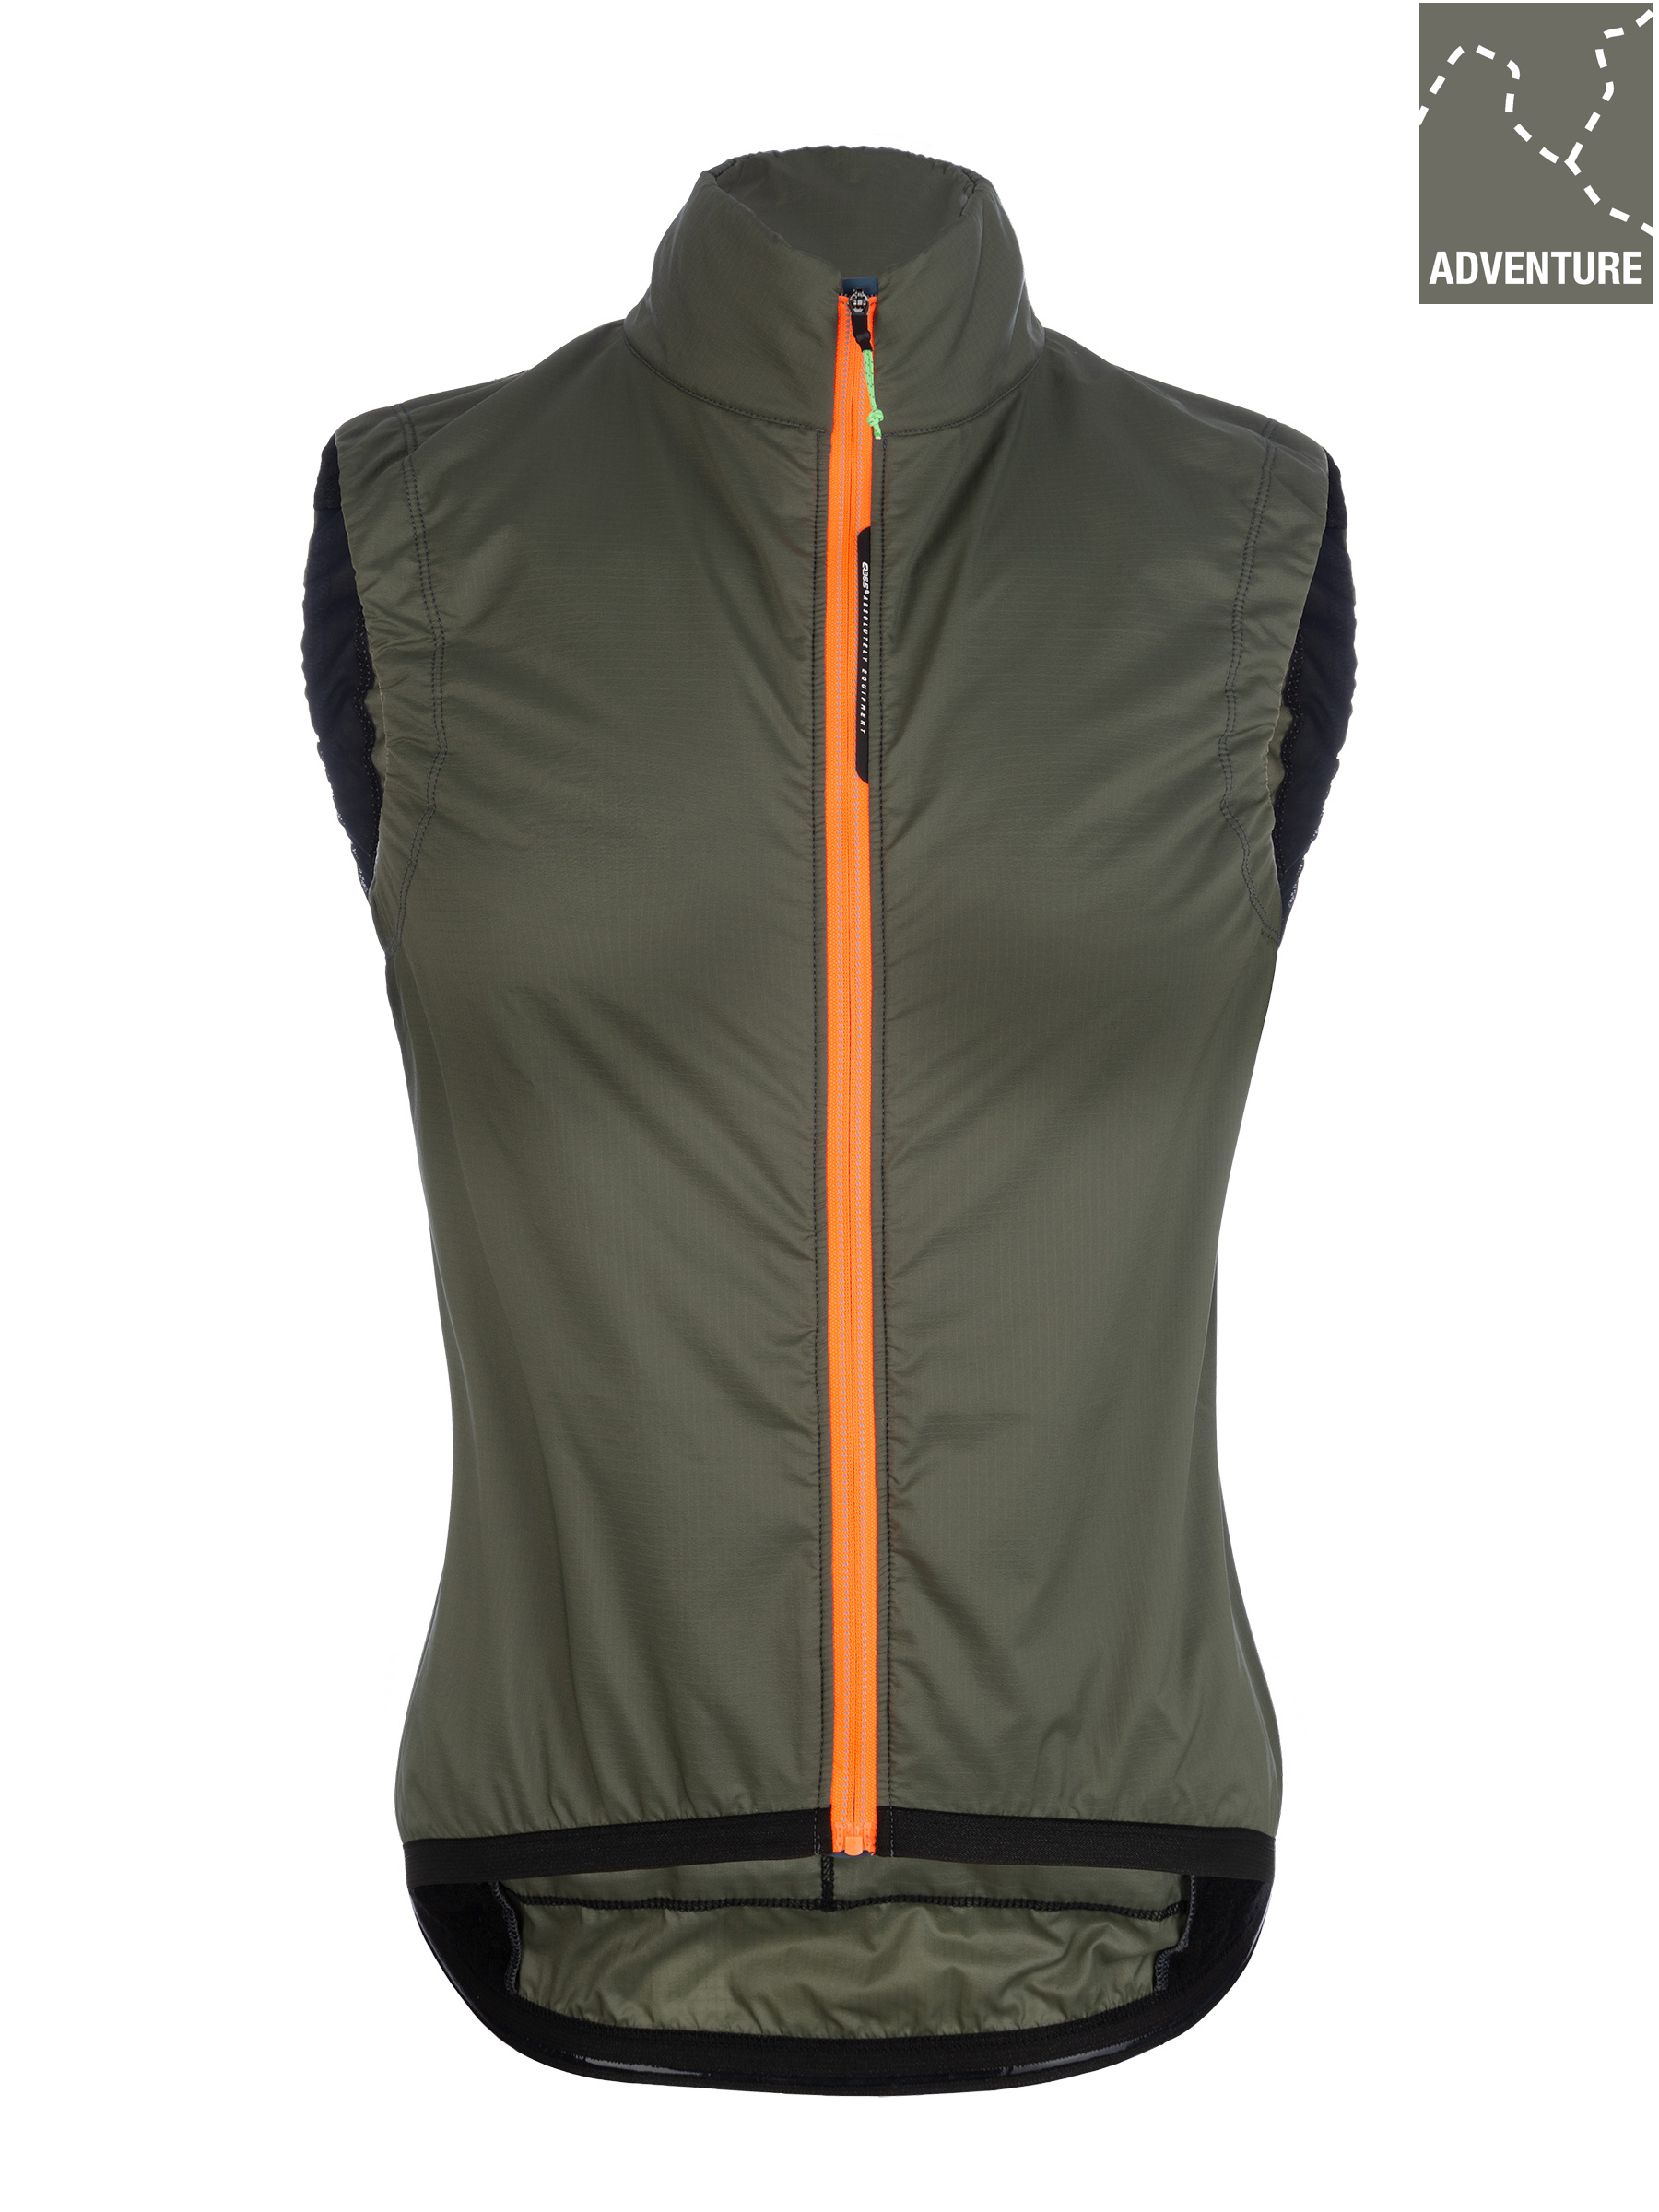 Gilet ciclismo donna Adventure Insulation Lady Q36.5 - verde oliva - 061W.14